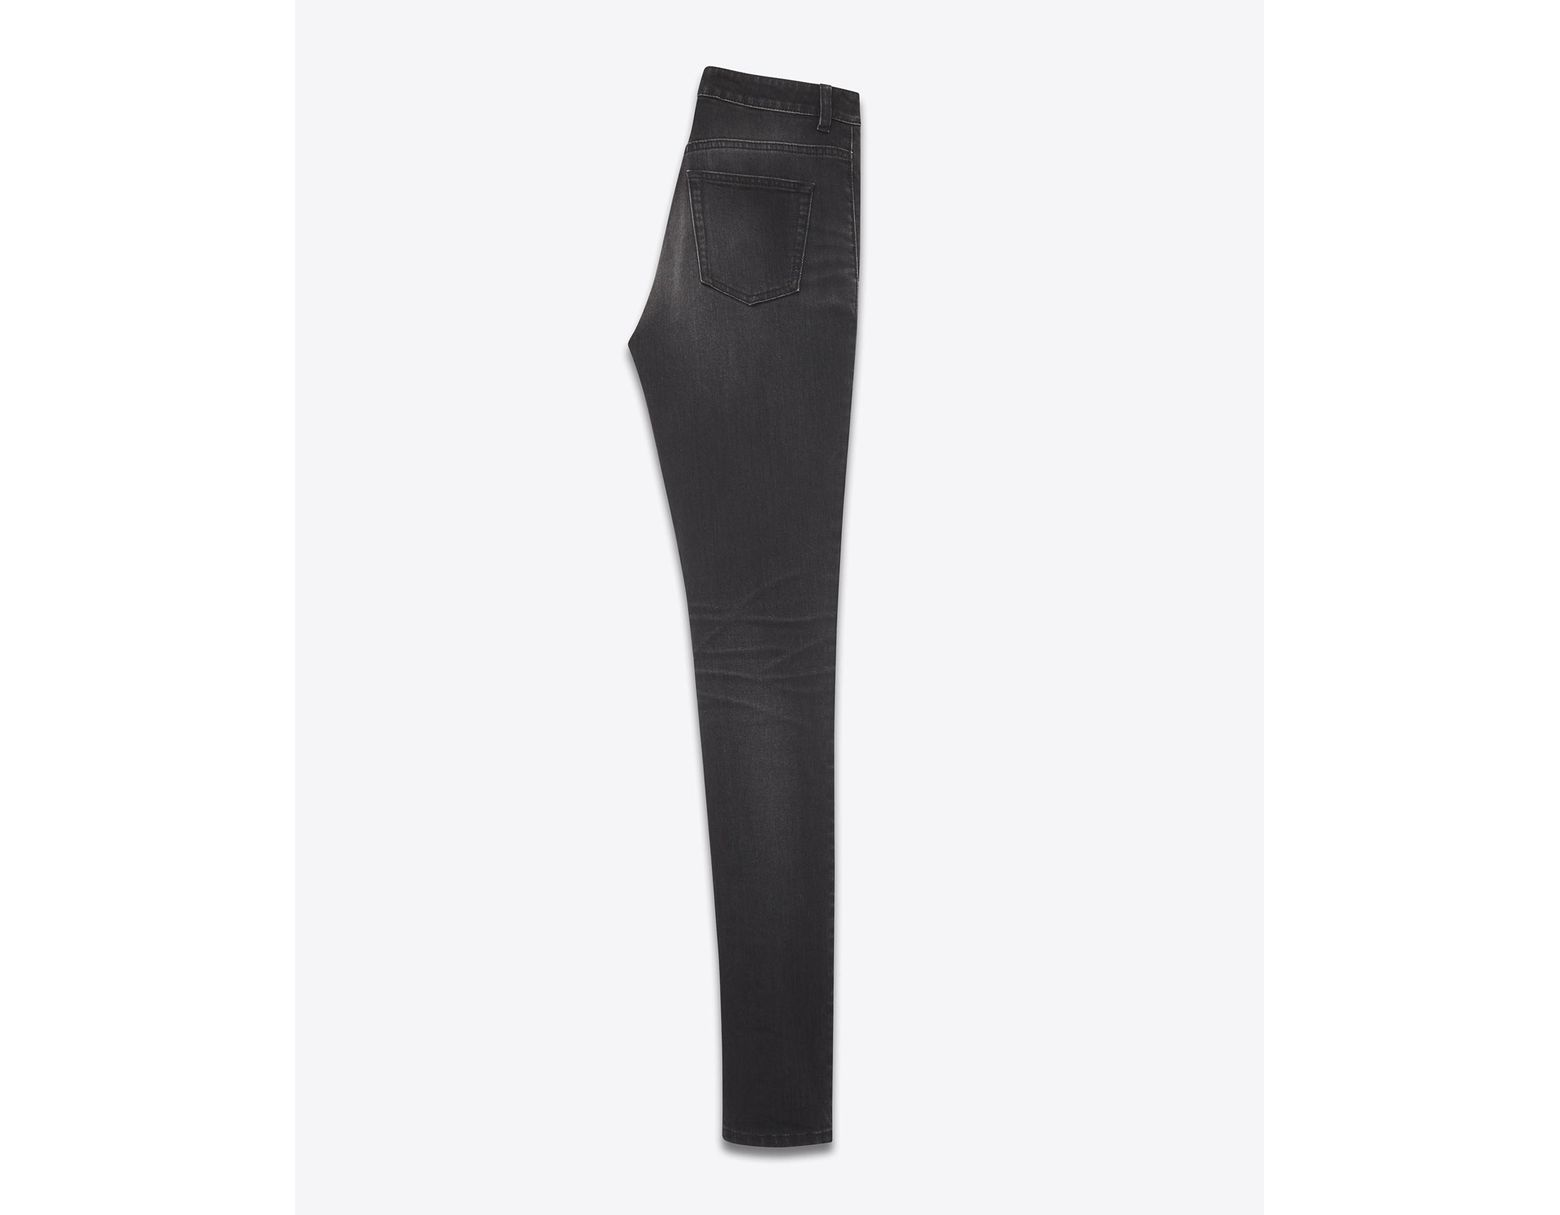 01b71168912 Saint Laurent High-rise Skinny Jeans In Black Stretch Denim in Black - Lyst